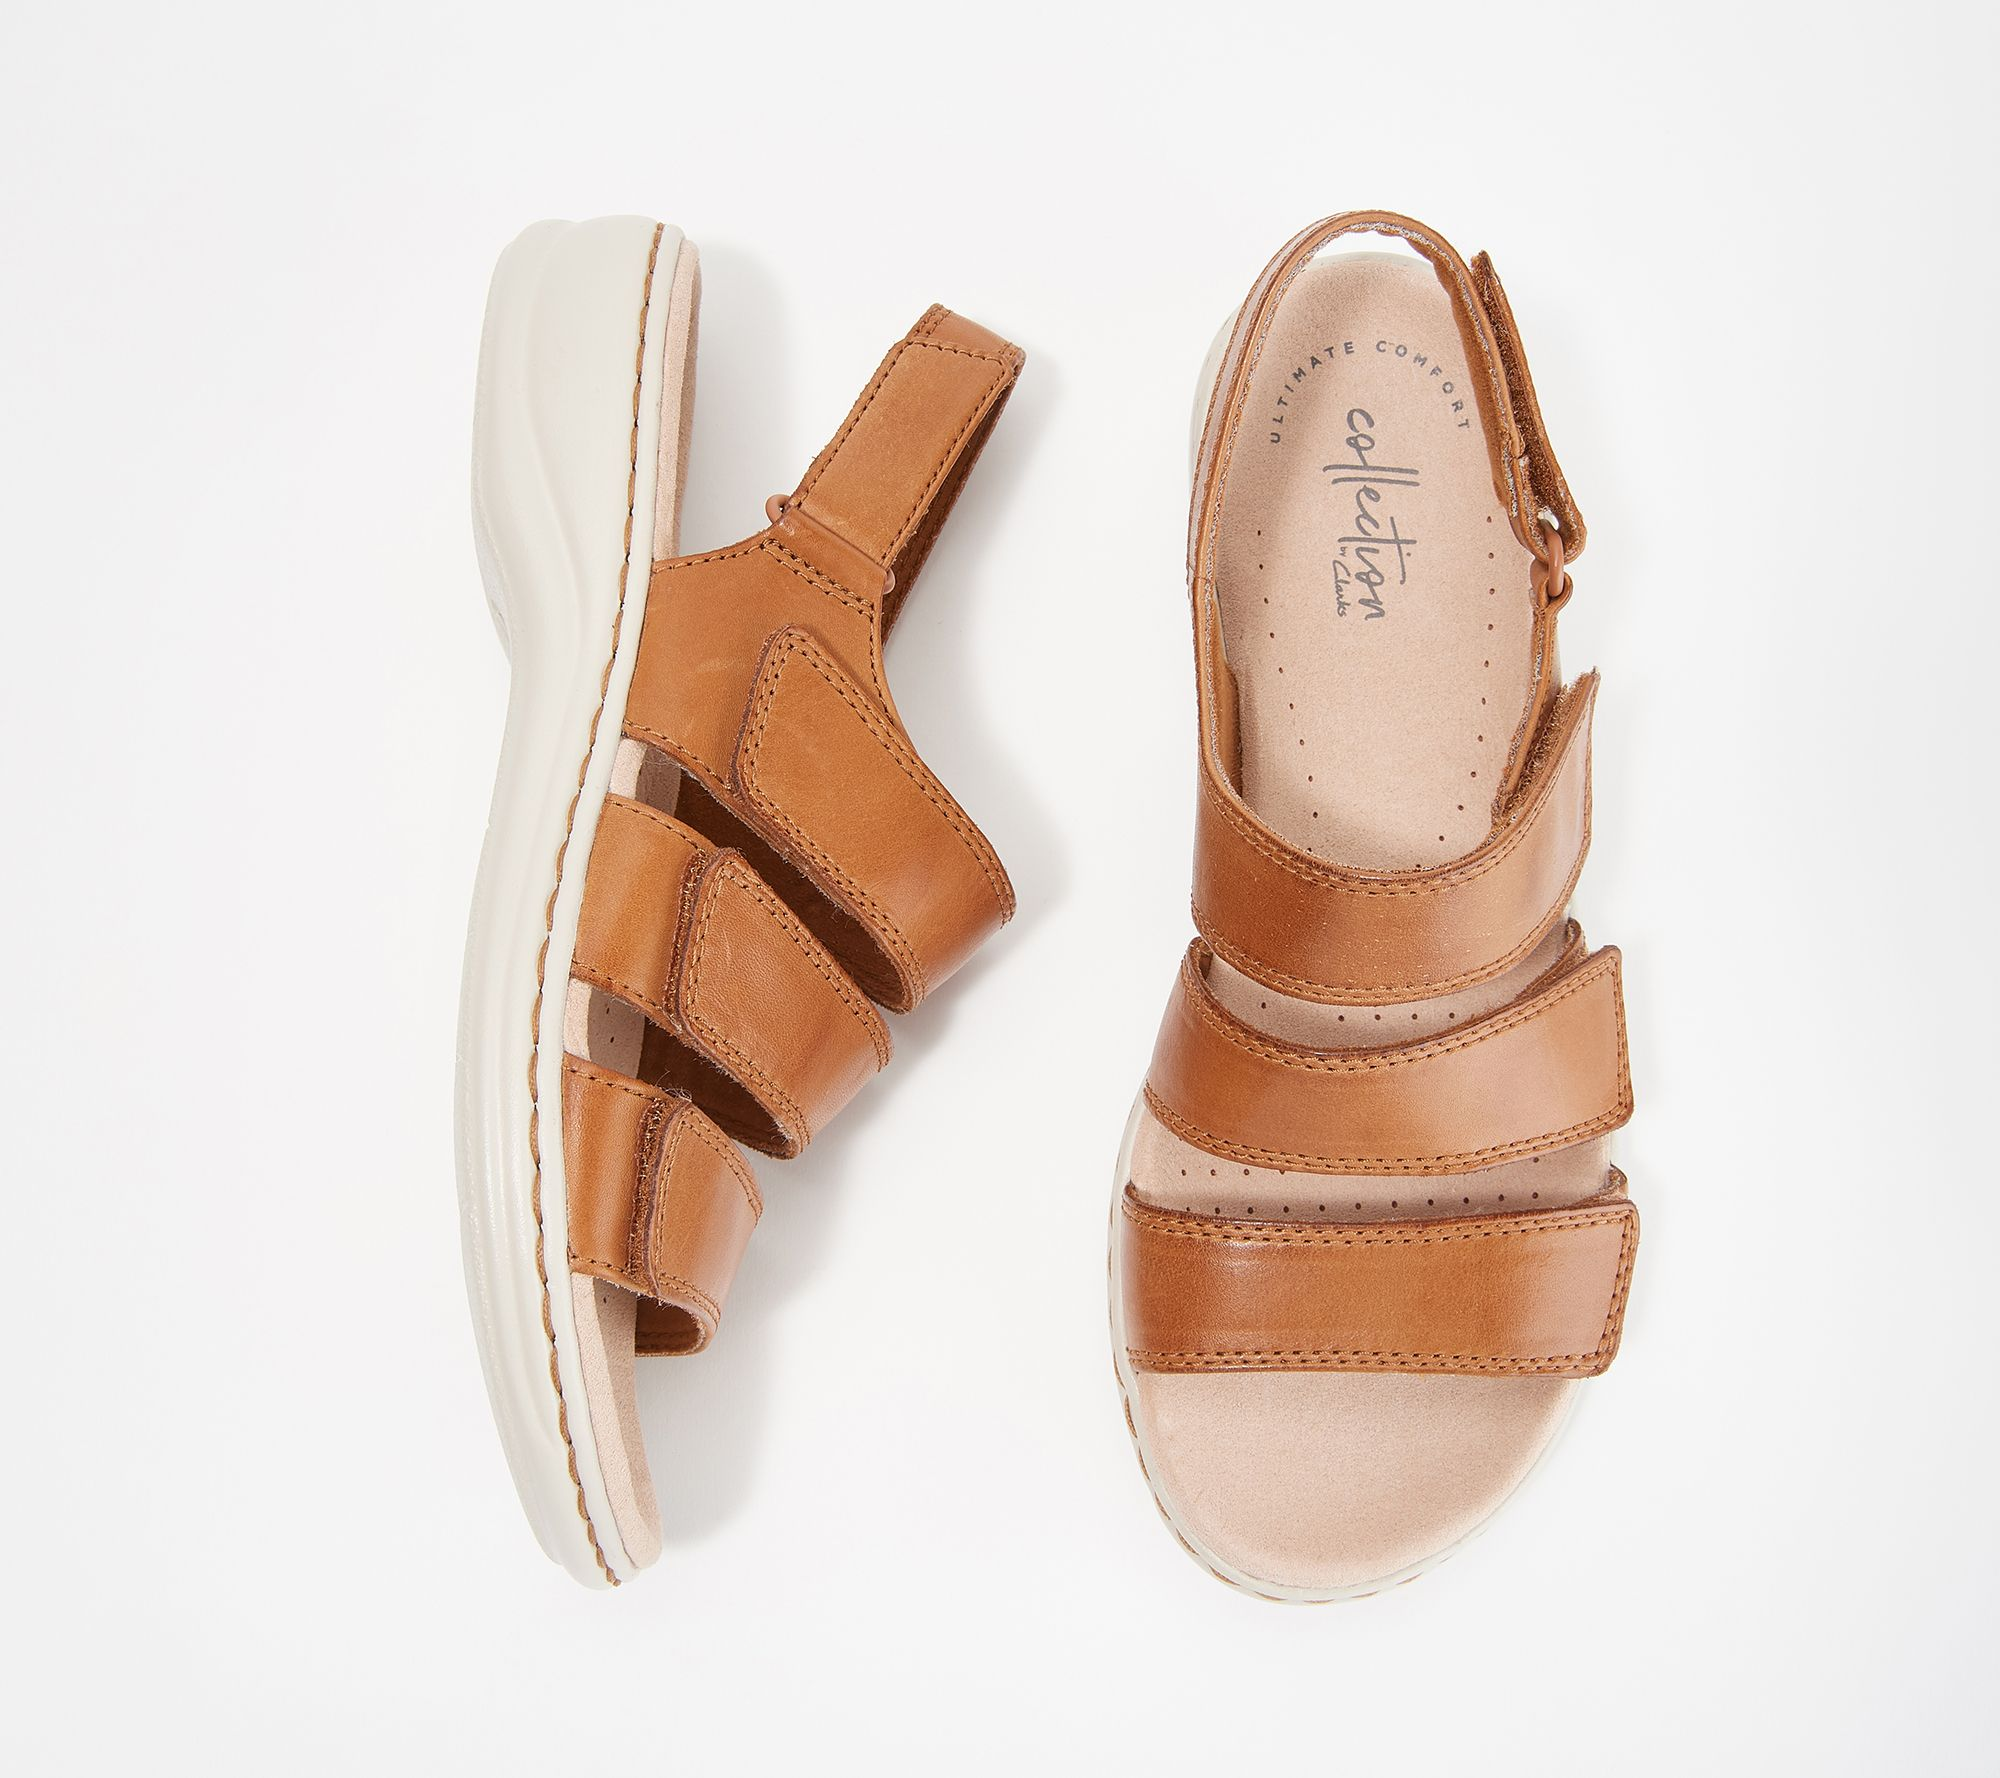 88ef9e7ed77f Clarks Collection Leather Sandals - Leisa Melinda - Page 1 — QVC.com